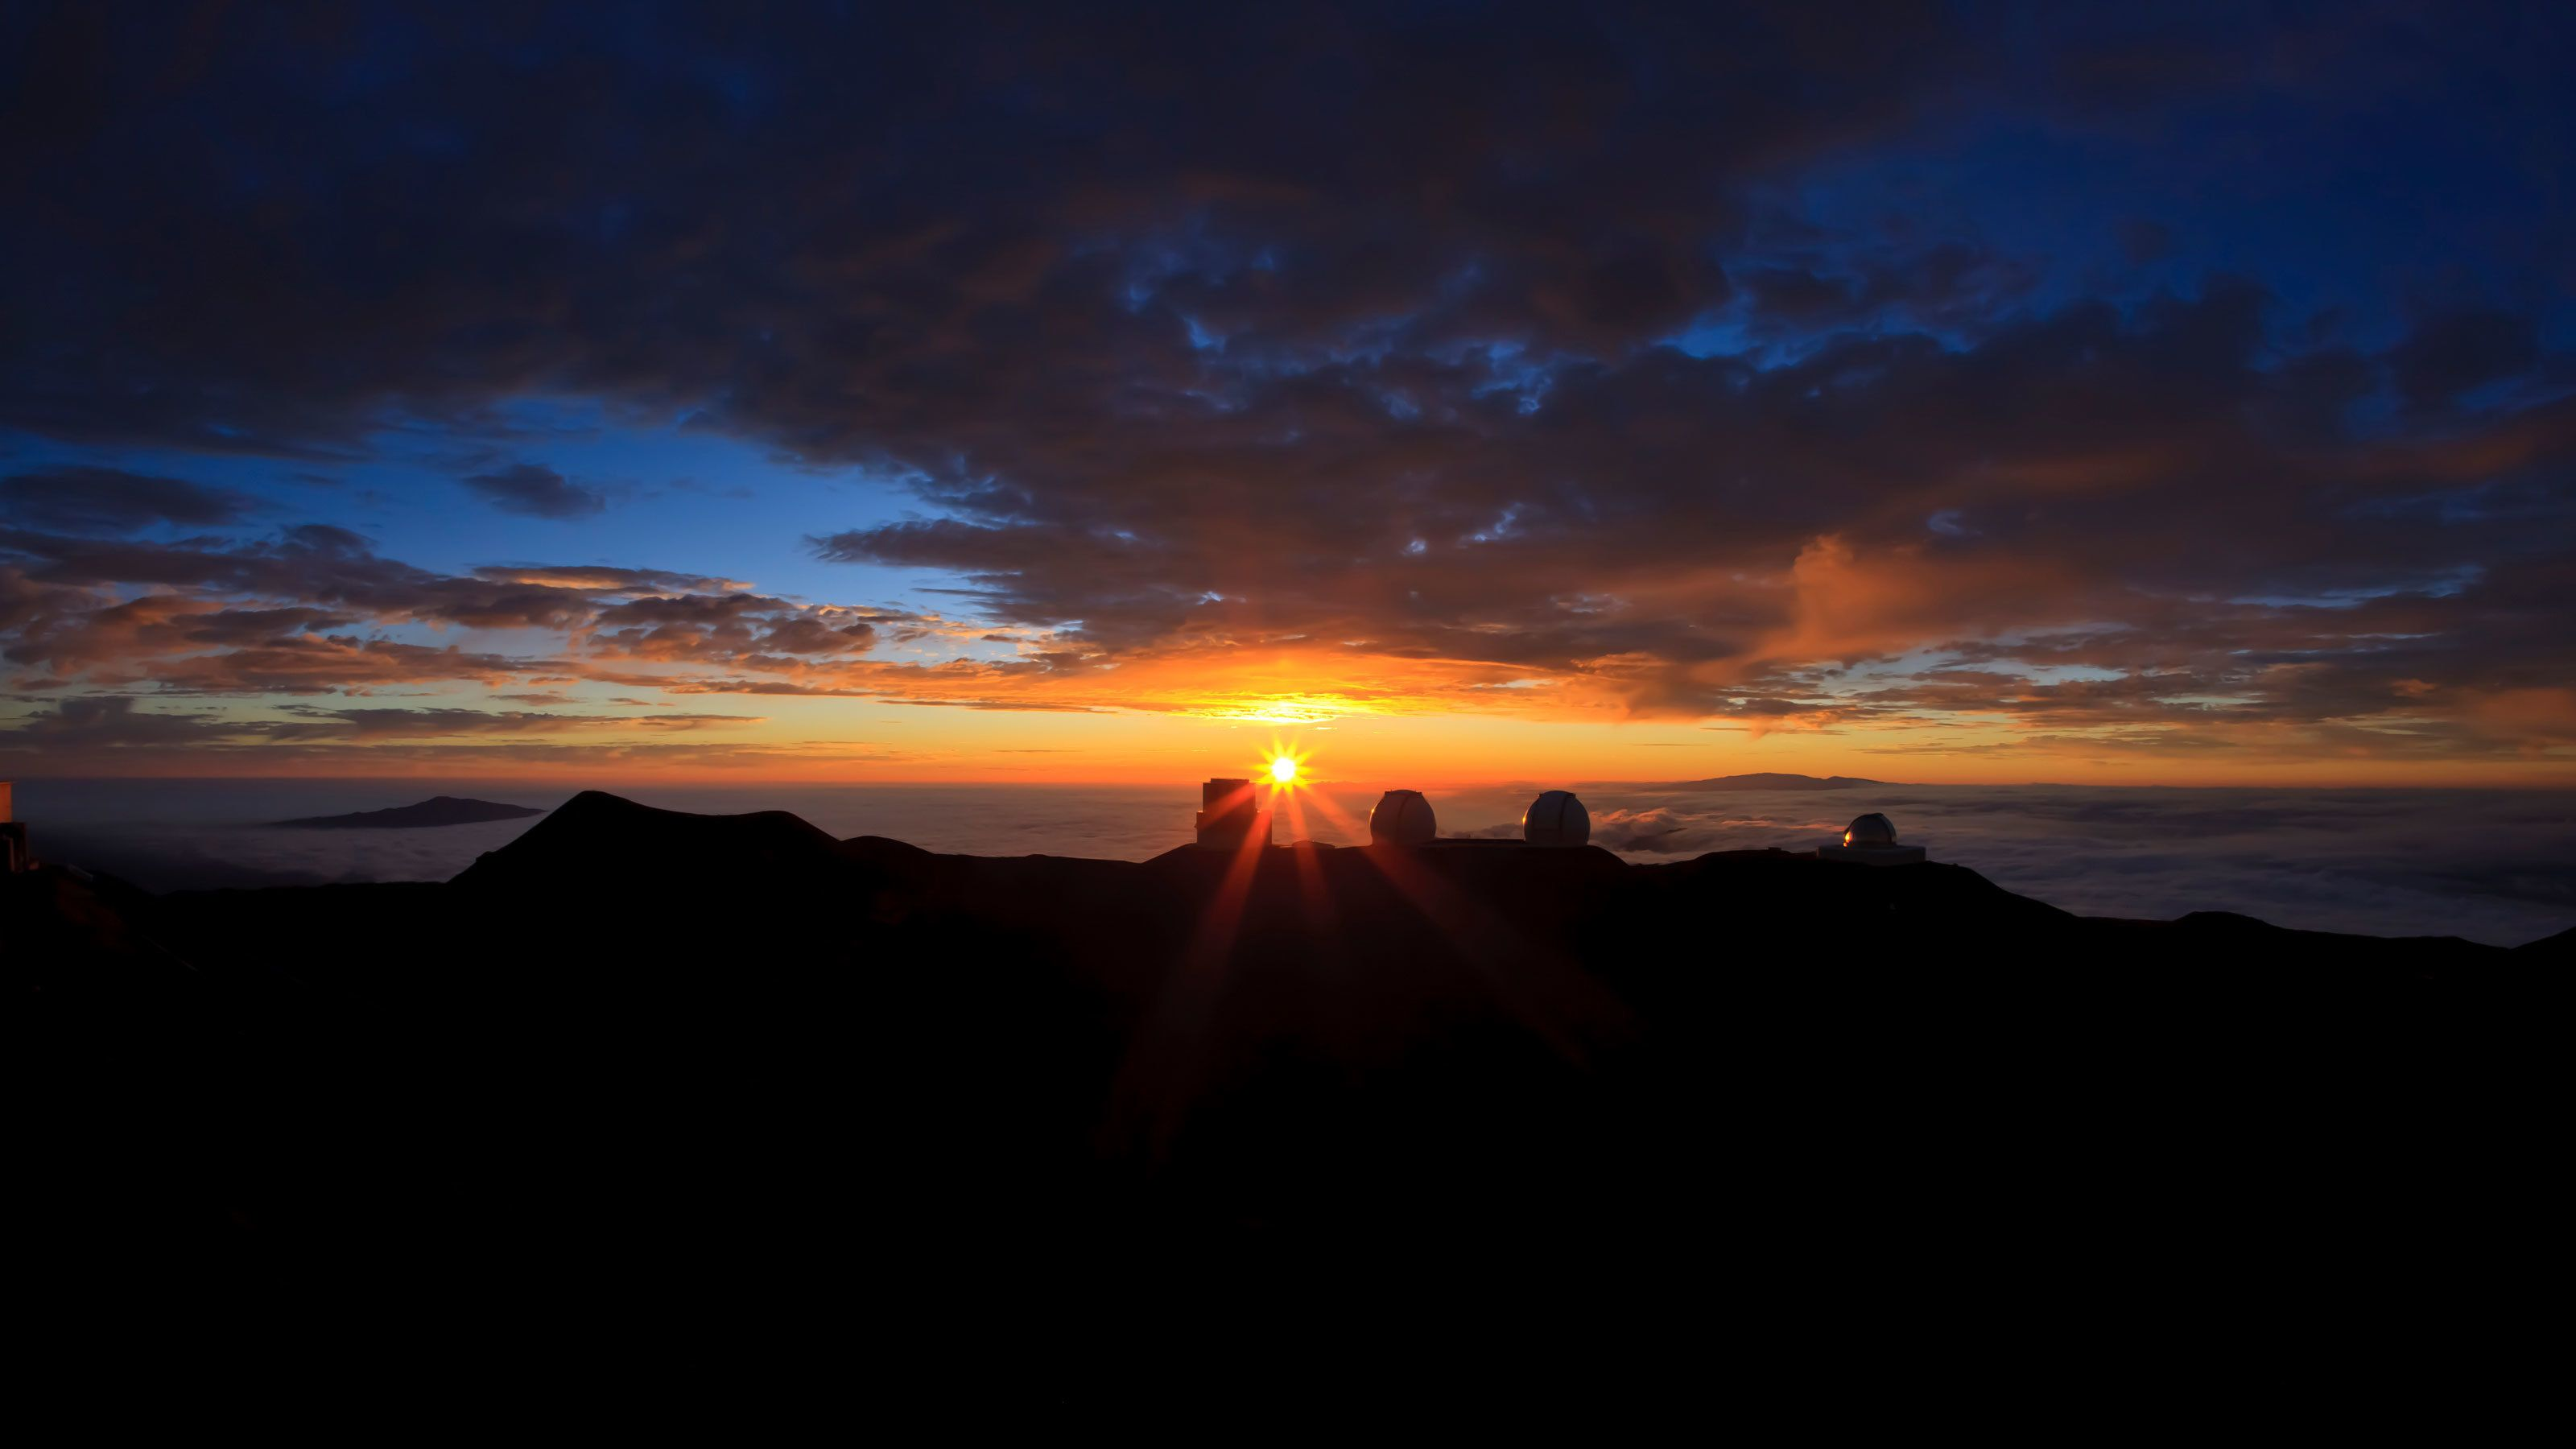 silhouettes of the? Mauna Kea Space Observatories in sunset in Hawaii